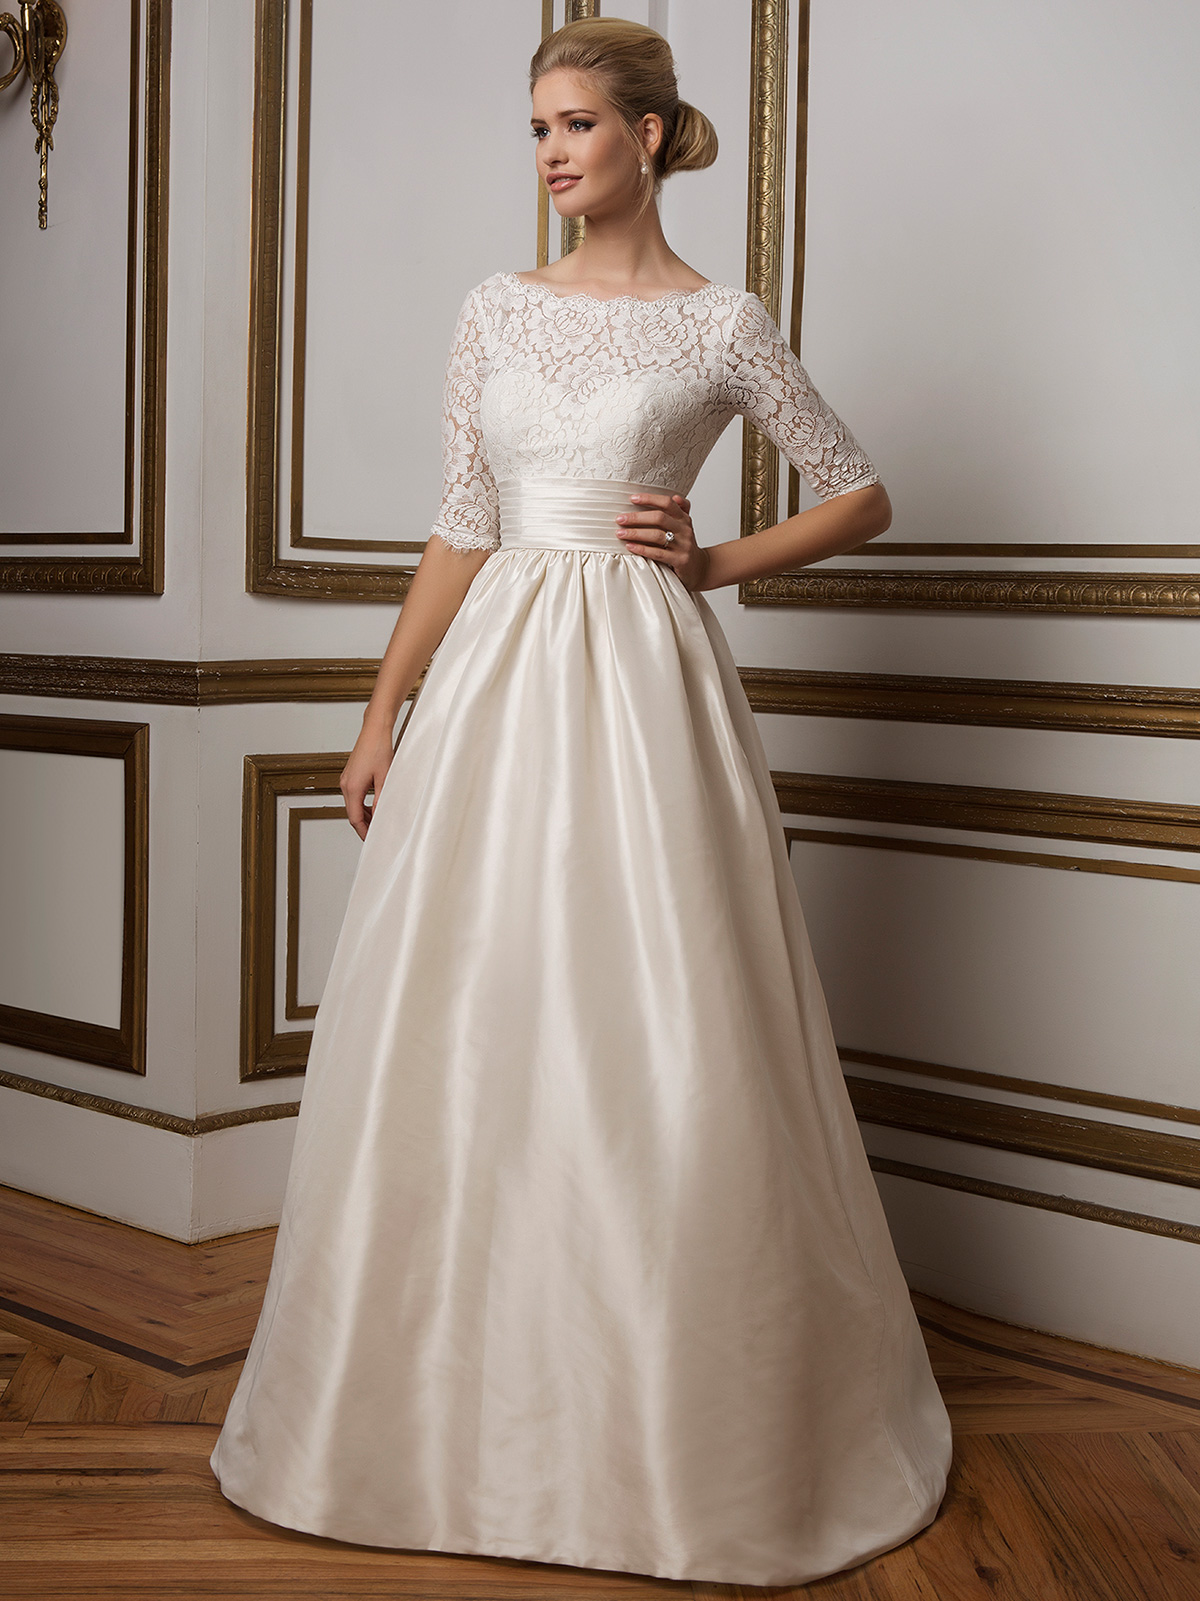 Justin Alexander 8816 Mikado Ball Gown Bridal Dress|DimitraDesigns.com